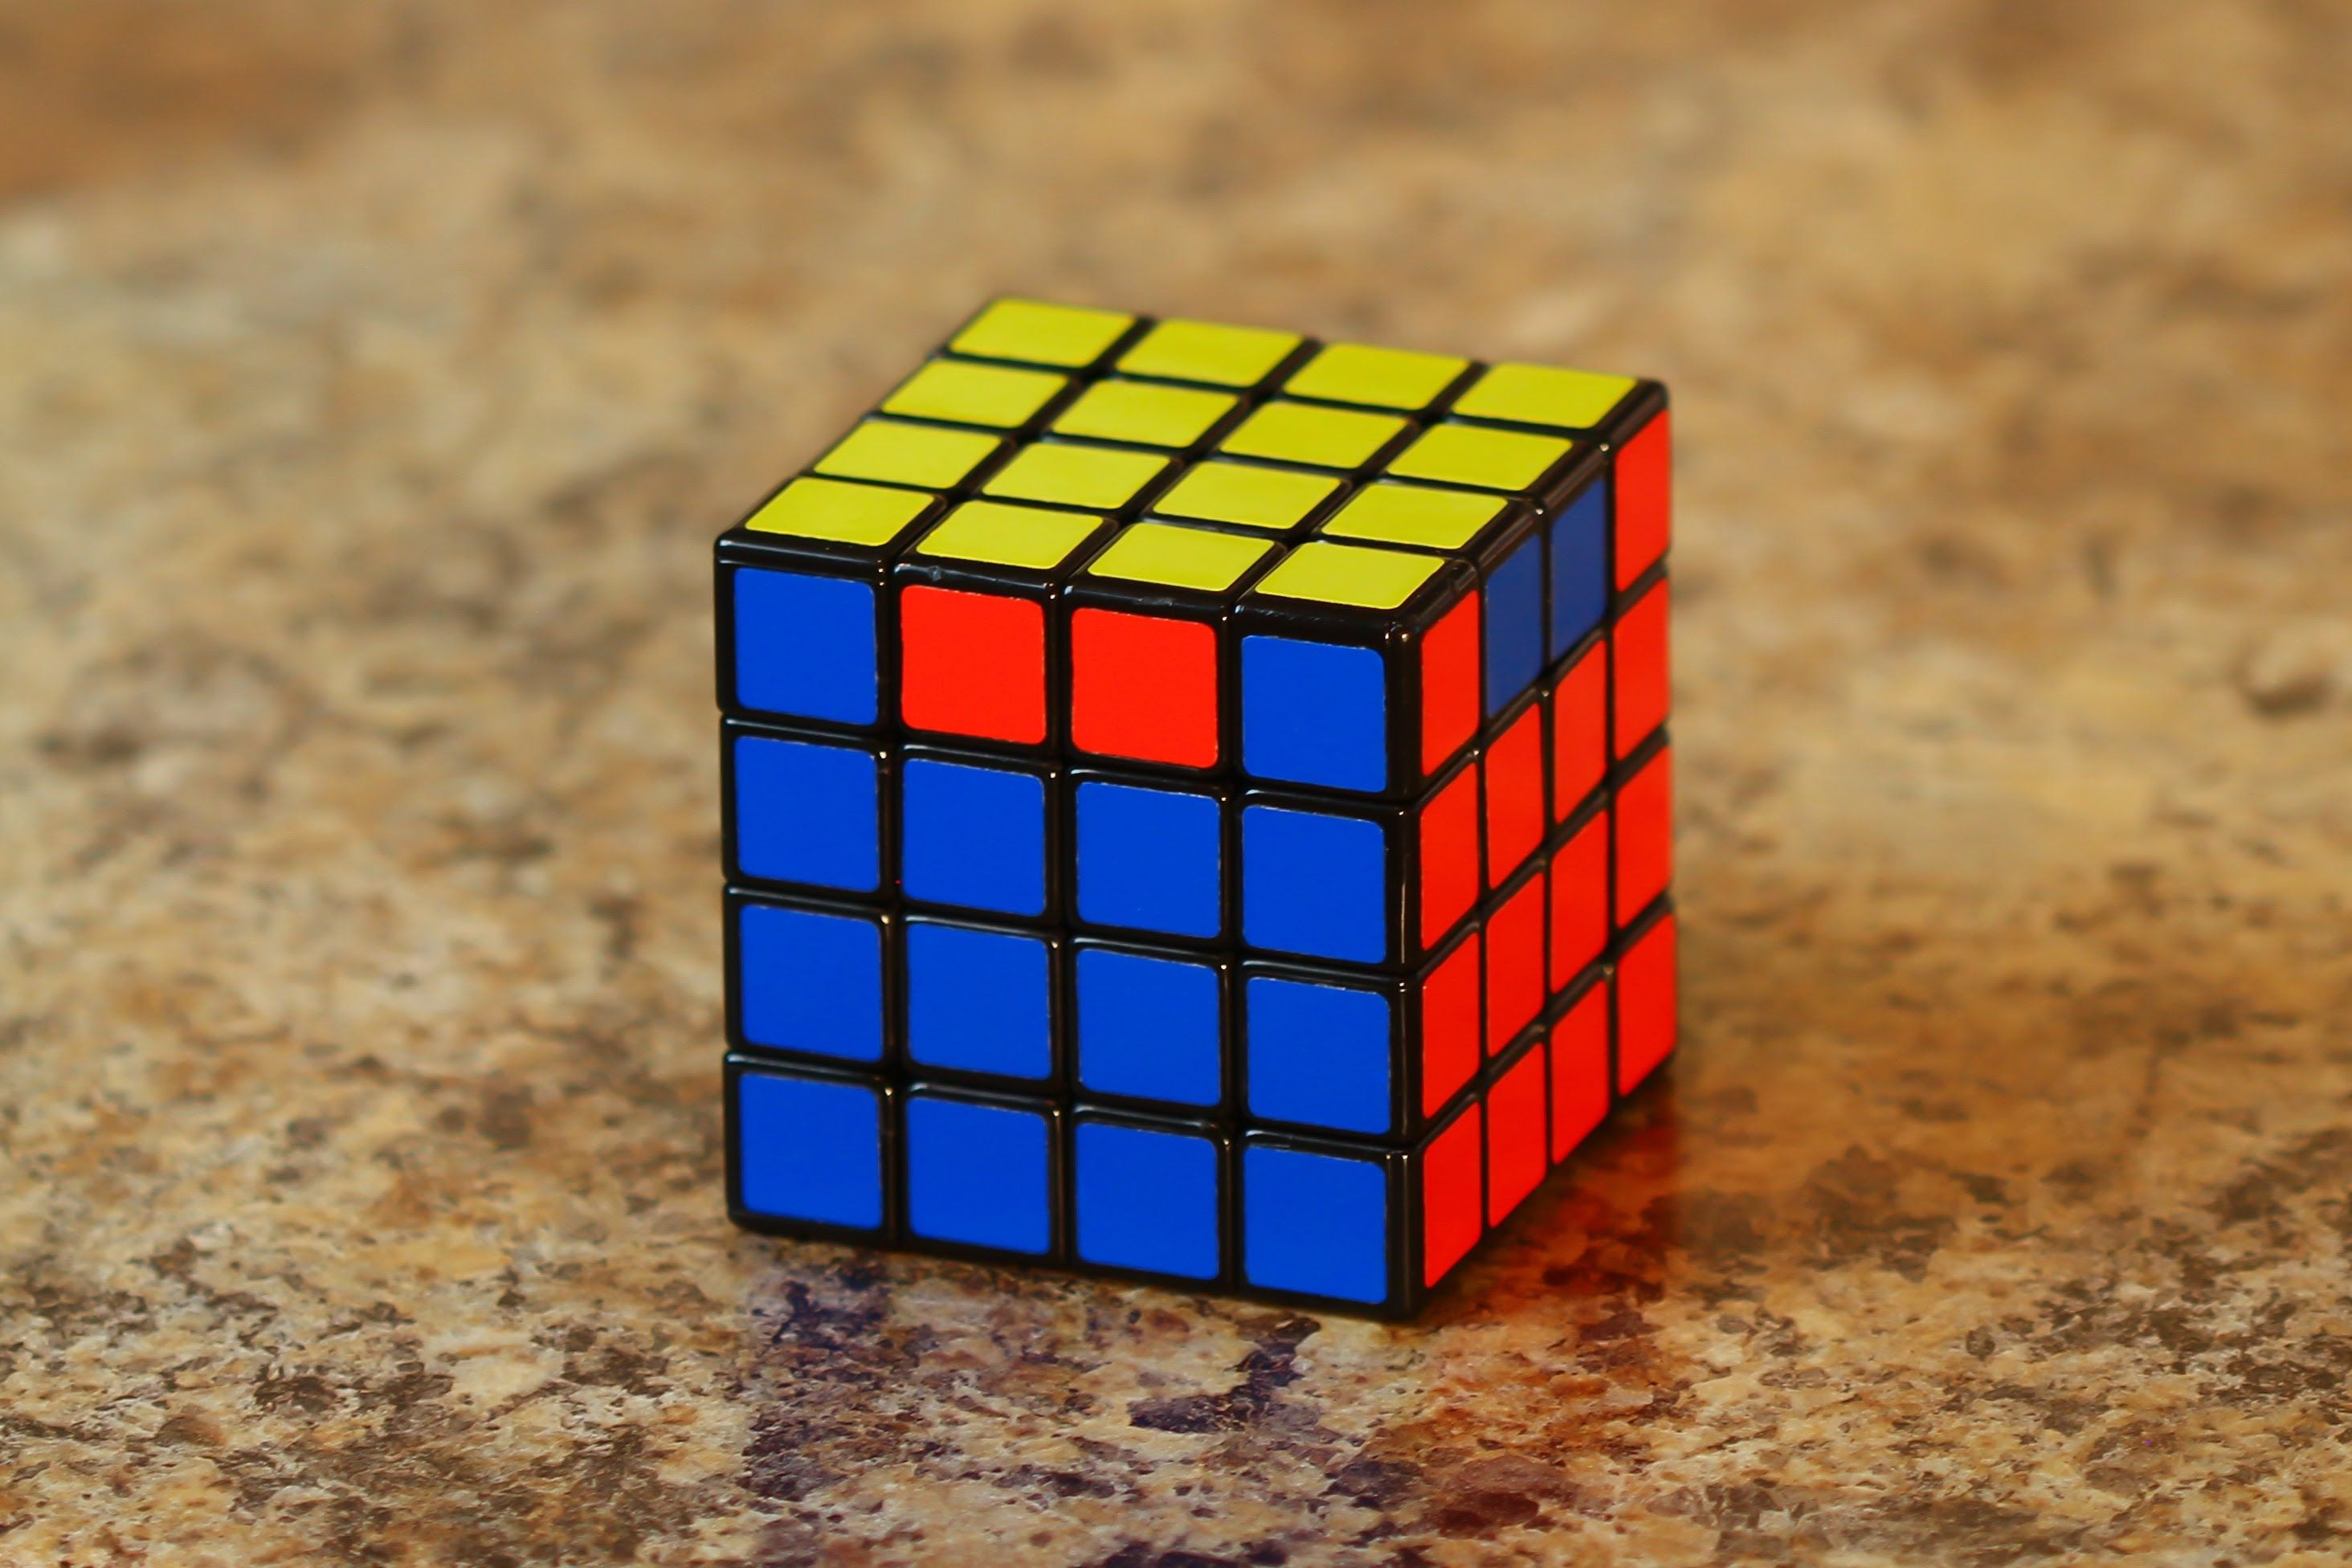 Easiest Tutorial How to Solve the 4x4 Rubik's Cube (The